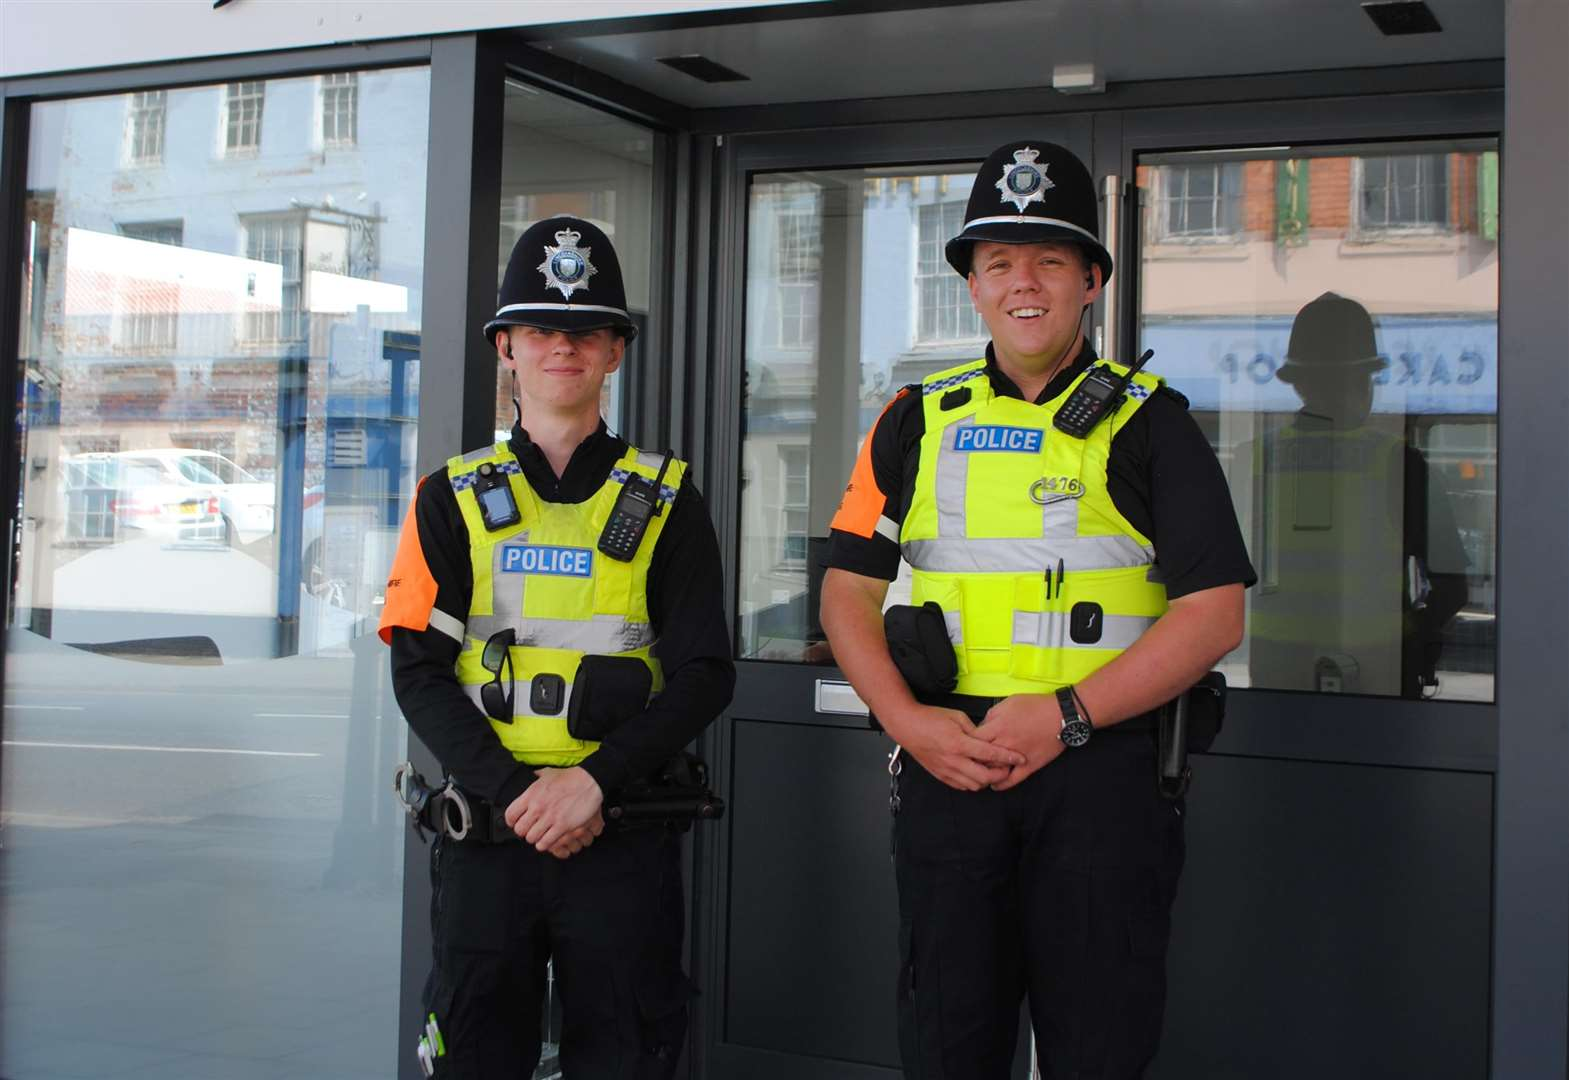 Police stage practical training exercise in Grantham